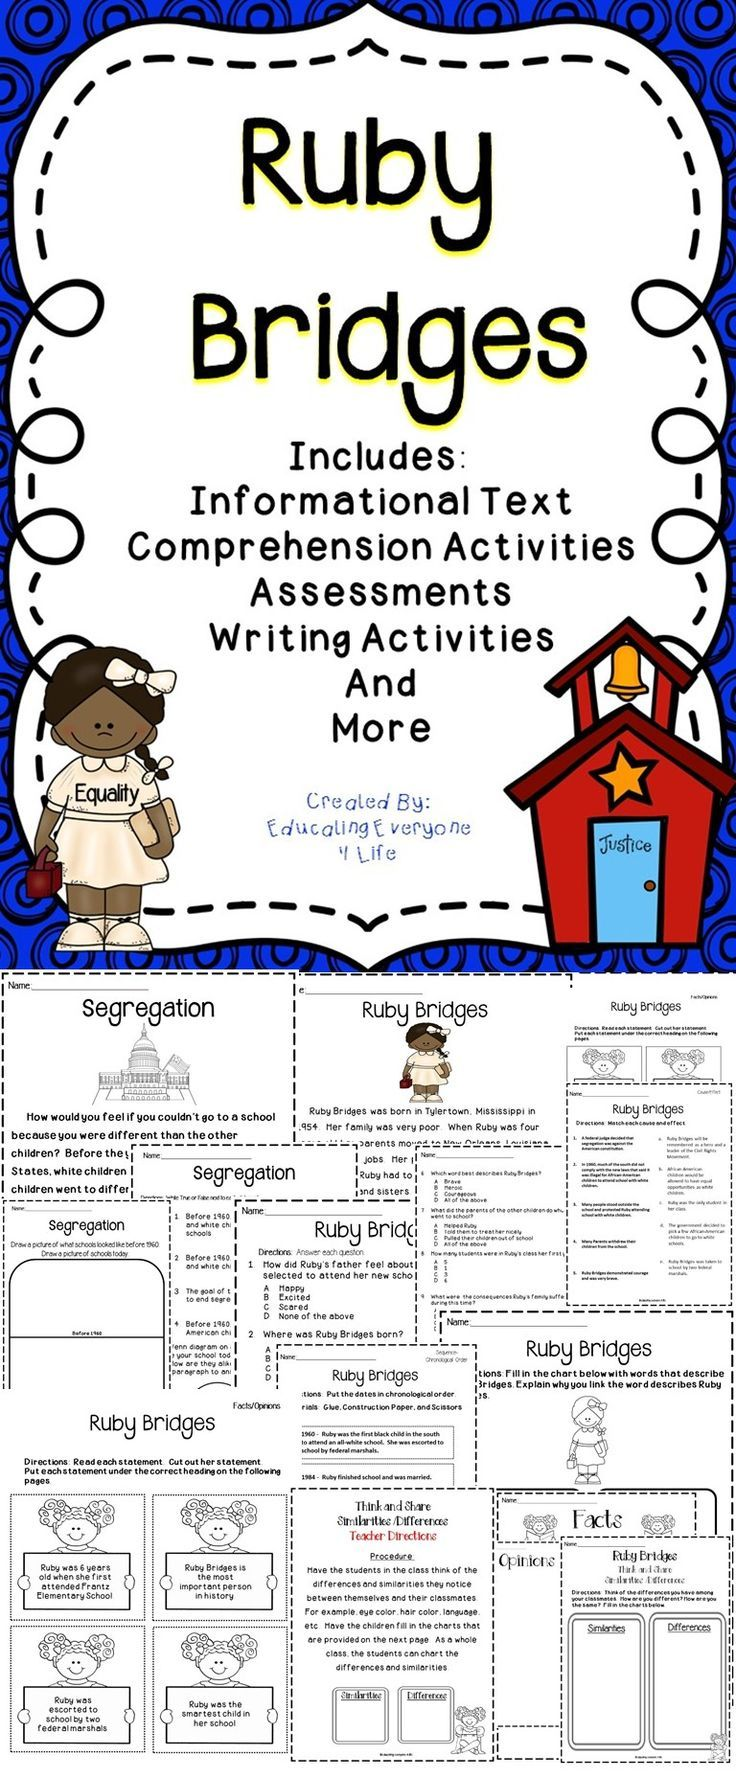 worksheet Ruby Bridges Worksheets For Second Grade 27 best ruby bridges images on pinterest teaching ideas black this resource includes supplemental activities for the classroom activity